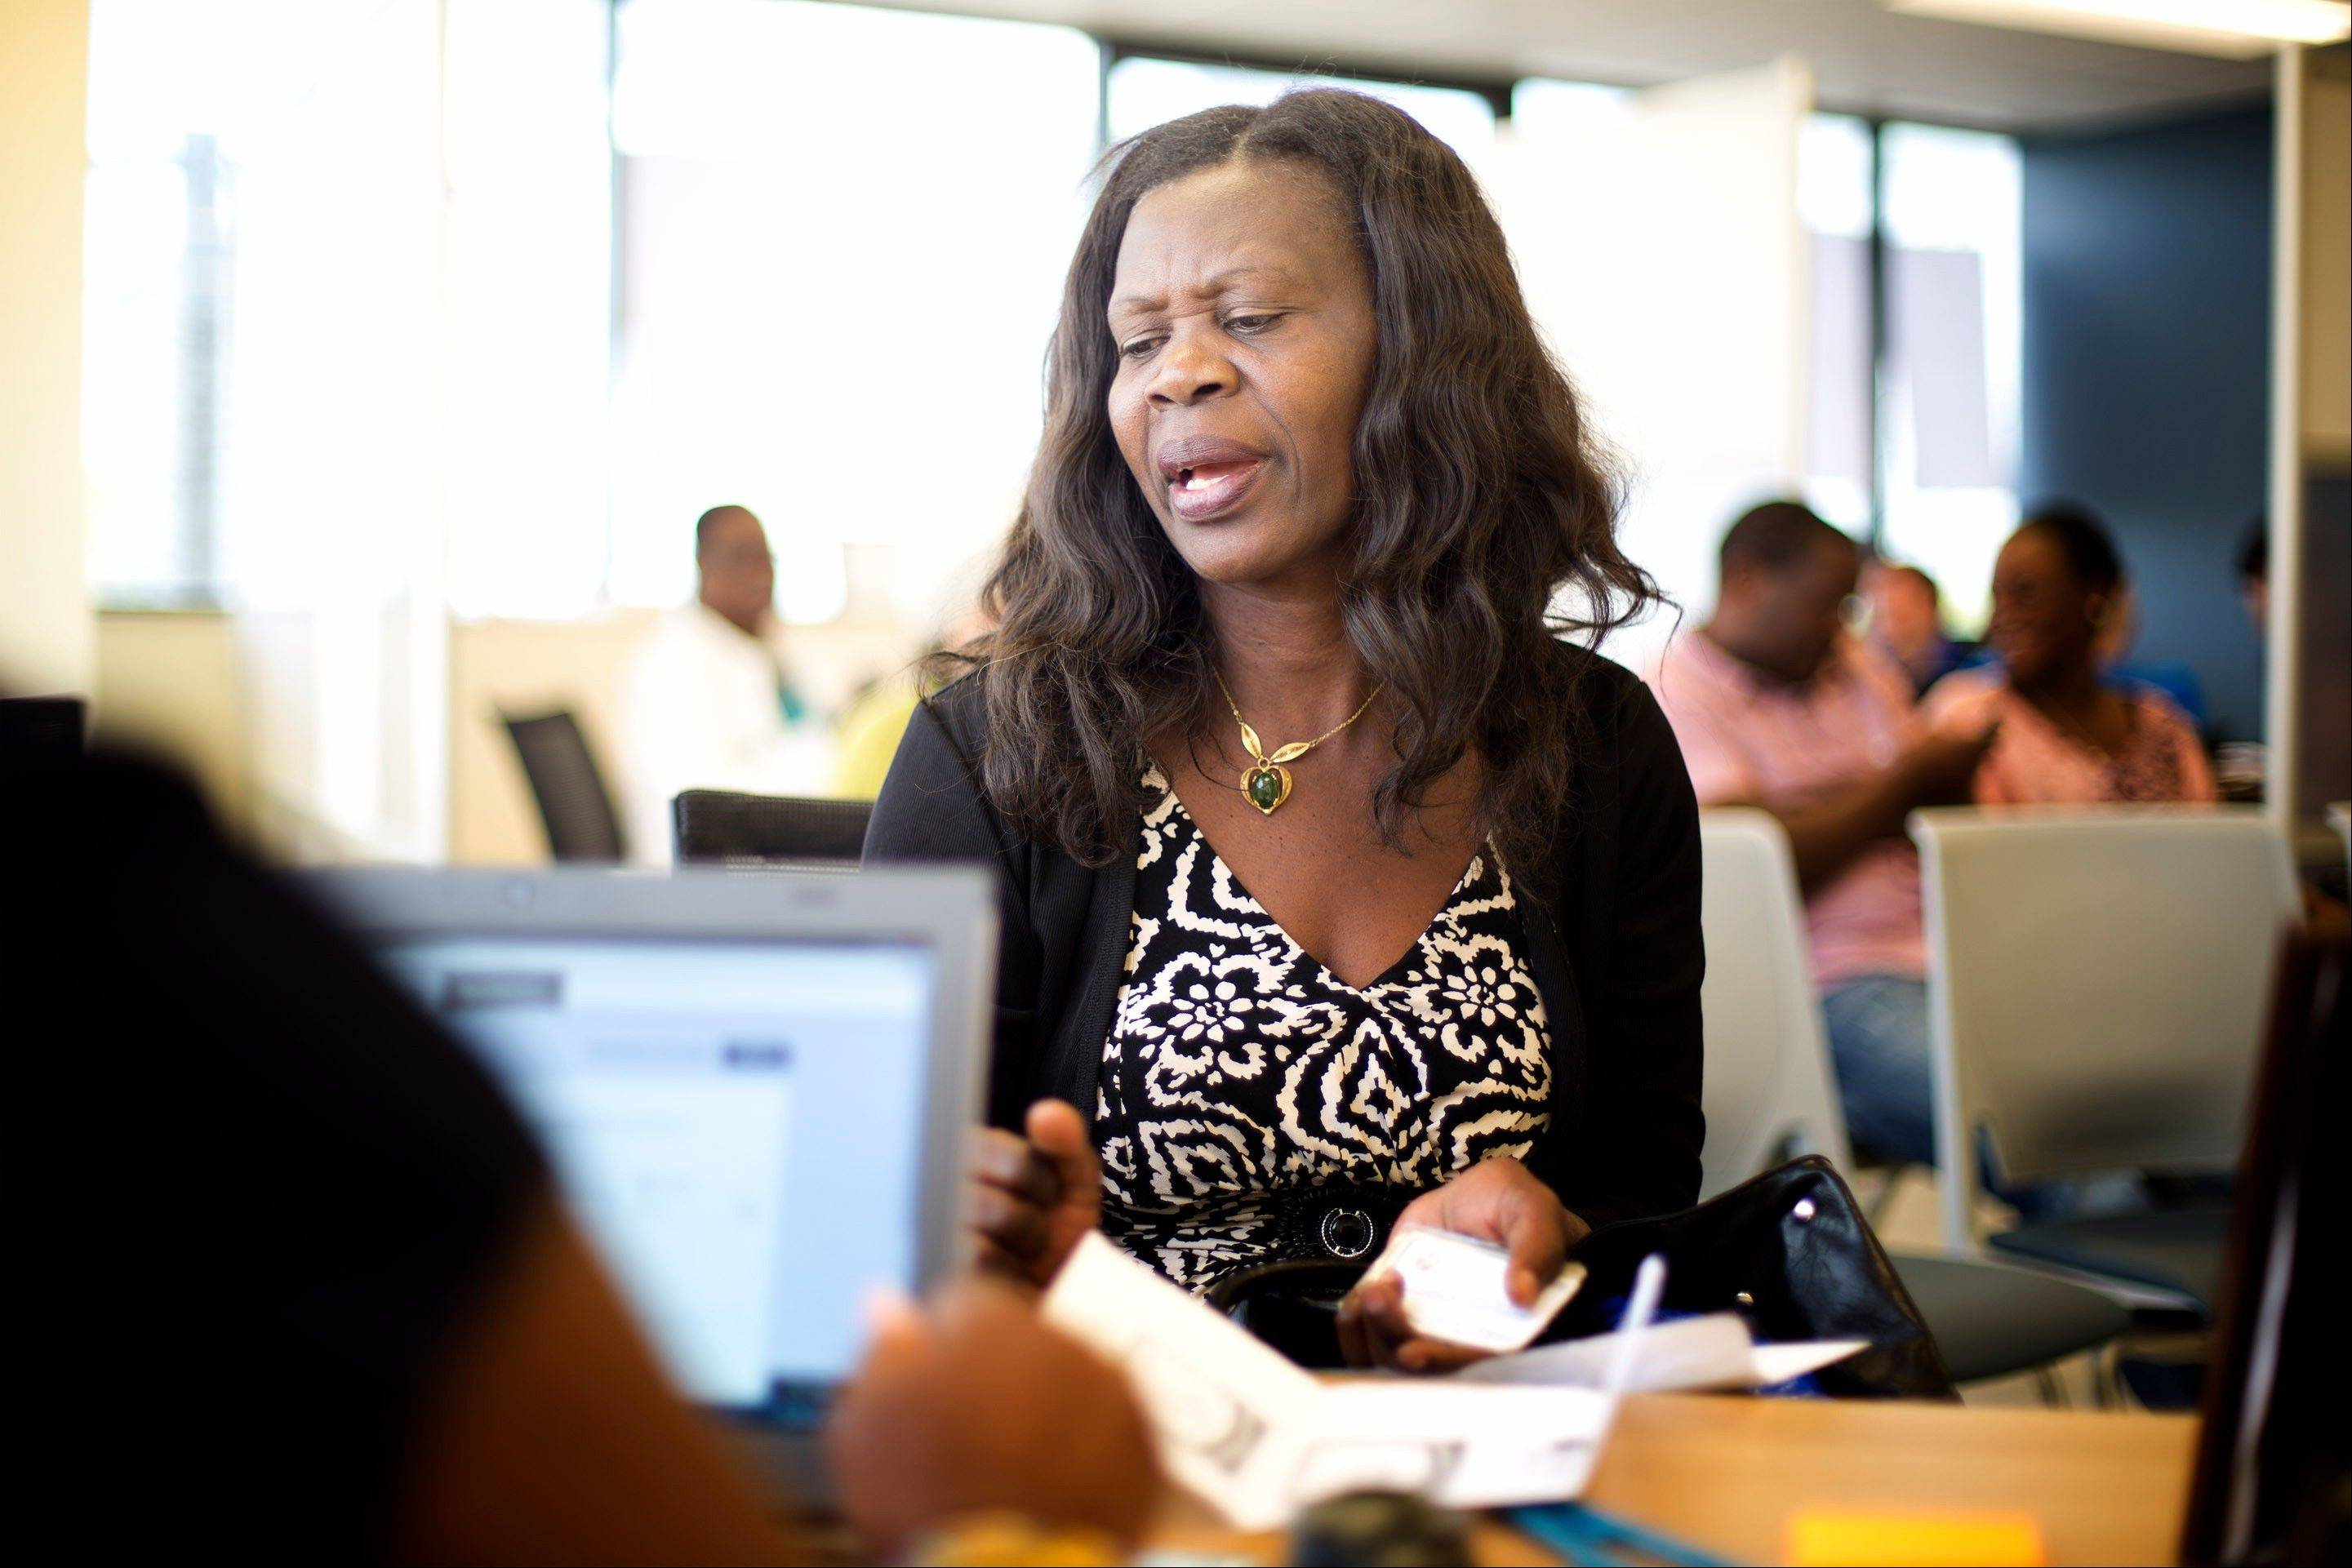 Gina Denis, now seen, a certified counselor at Miami�s Boringuen Health Center, works with an unidentified client, signing her up for Obama Care, Monday, Dec. 2, 2013.